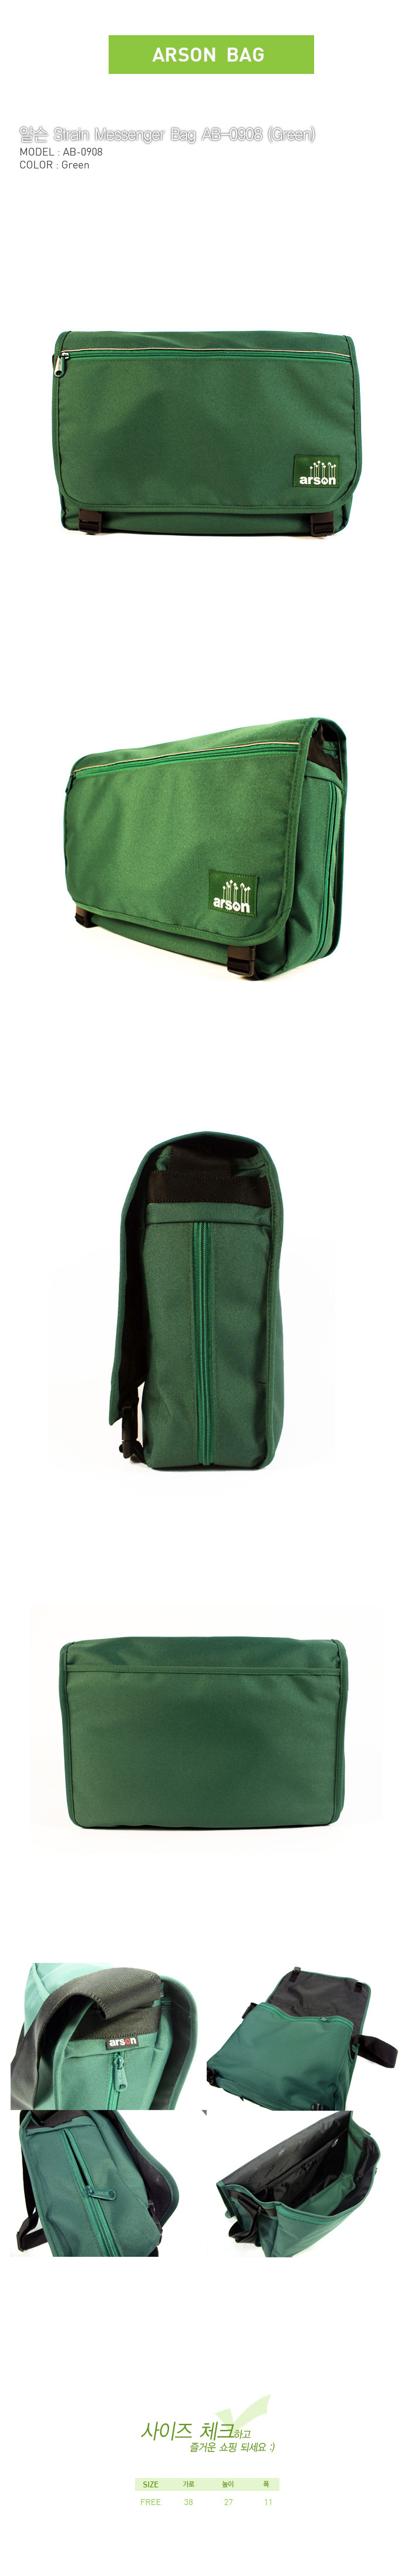 [ ARSON ] AB-0908 (Green)/Messenger Cross Bag